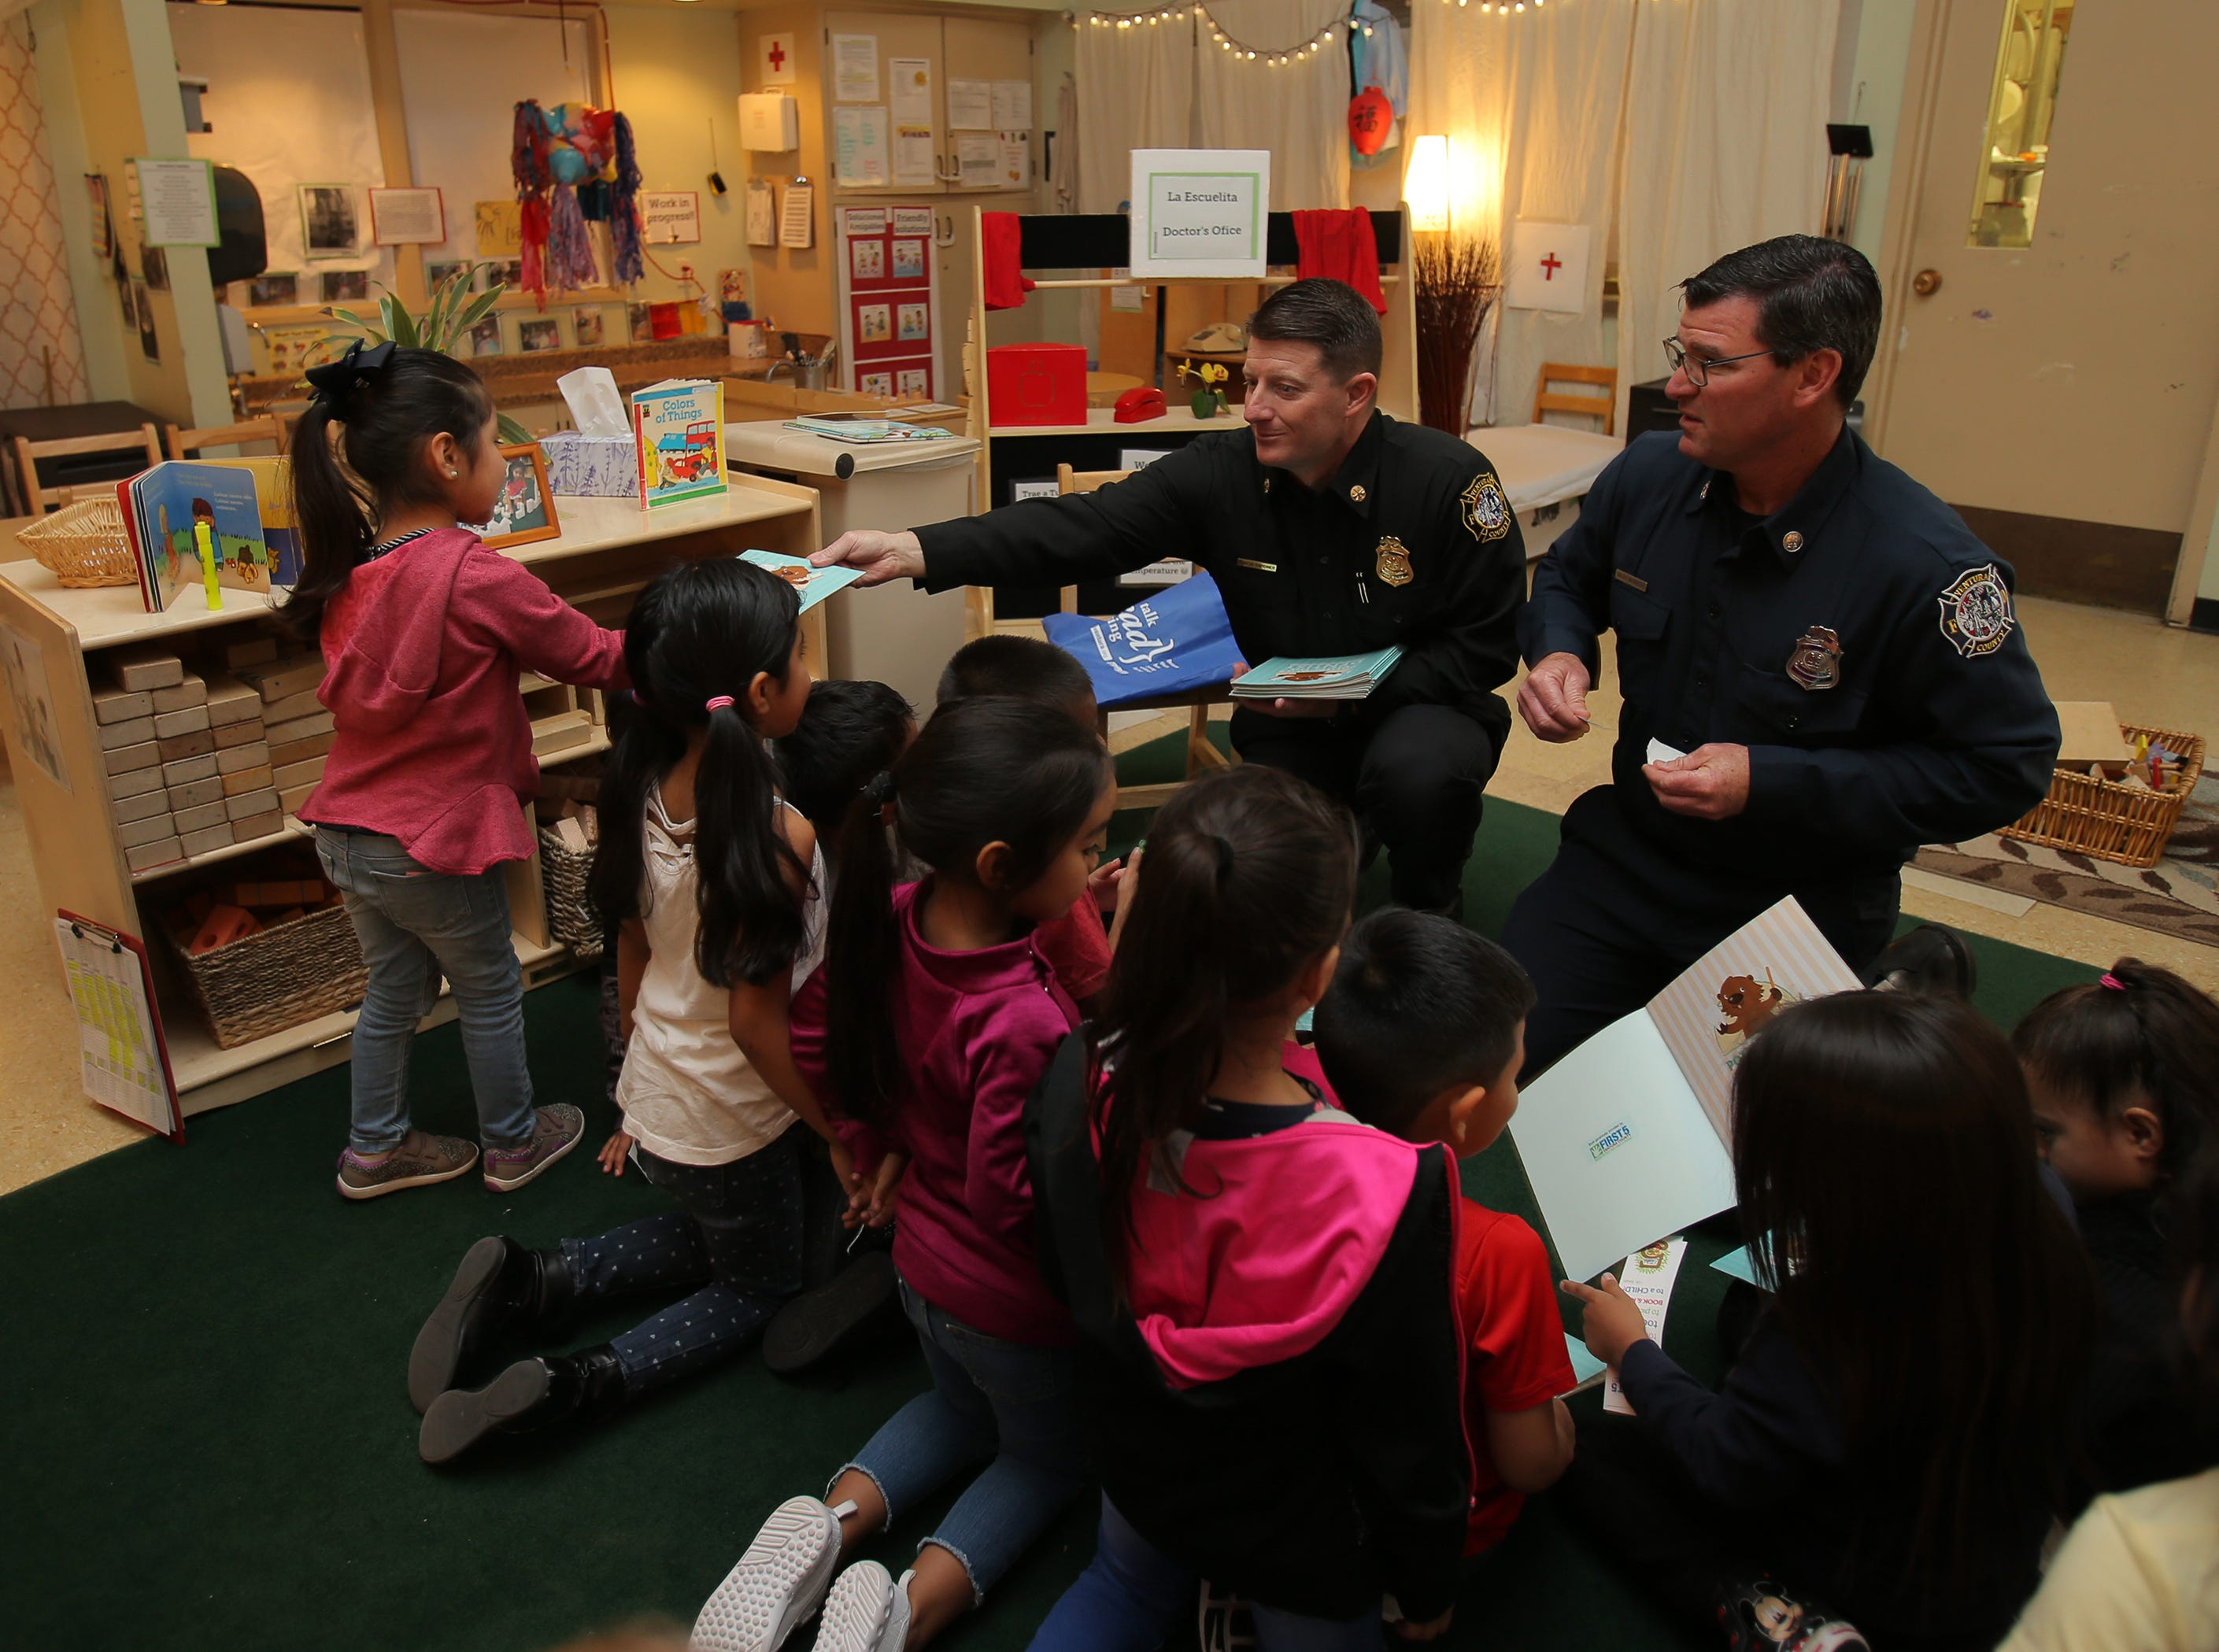 Ventura County Fire Deputy Chief Dustin Gardner (left) and Public Information Officer Brian McGrath hand out books to preschoolers during the fourth annual Take 5 and Read to Kids campaign Friday at La Escuelita Child Development Center in Oxnard. The campaign is a partnership between  First 5 Ventura County and The Star to raise the awareness about the importance of early childhood literacy.